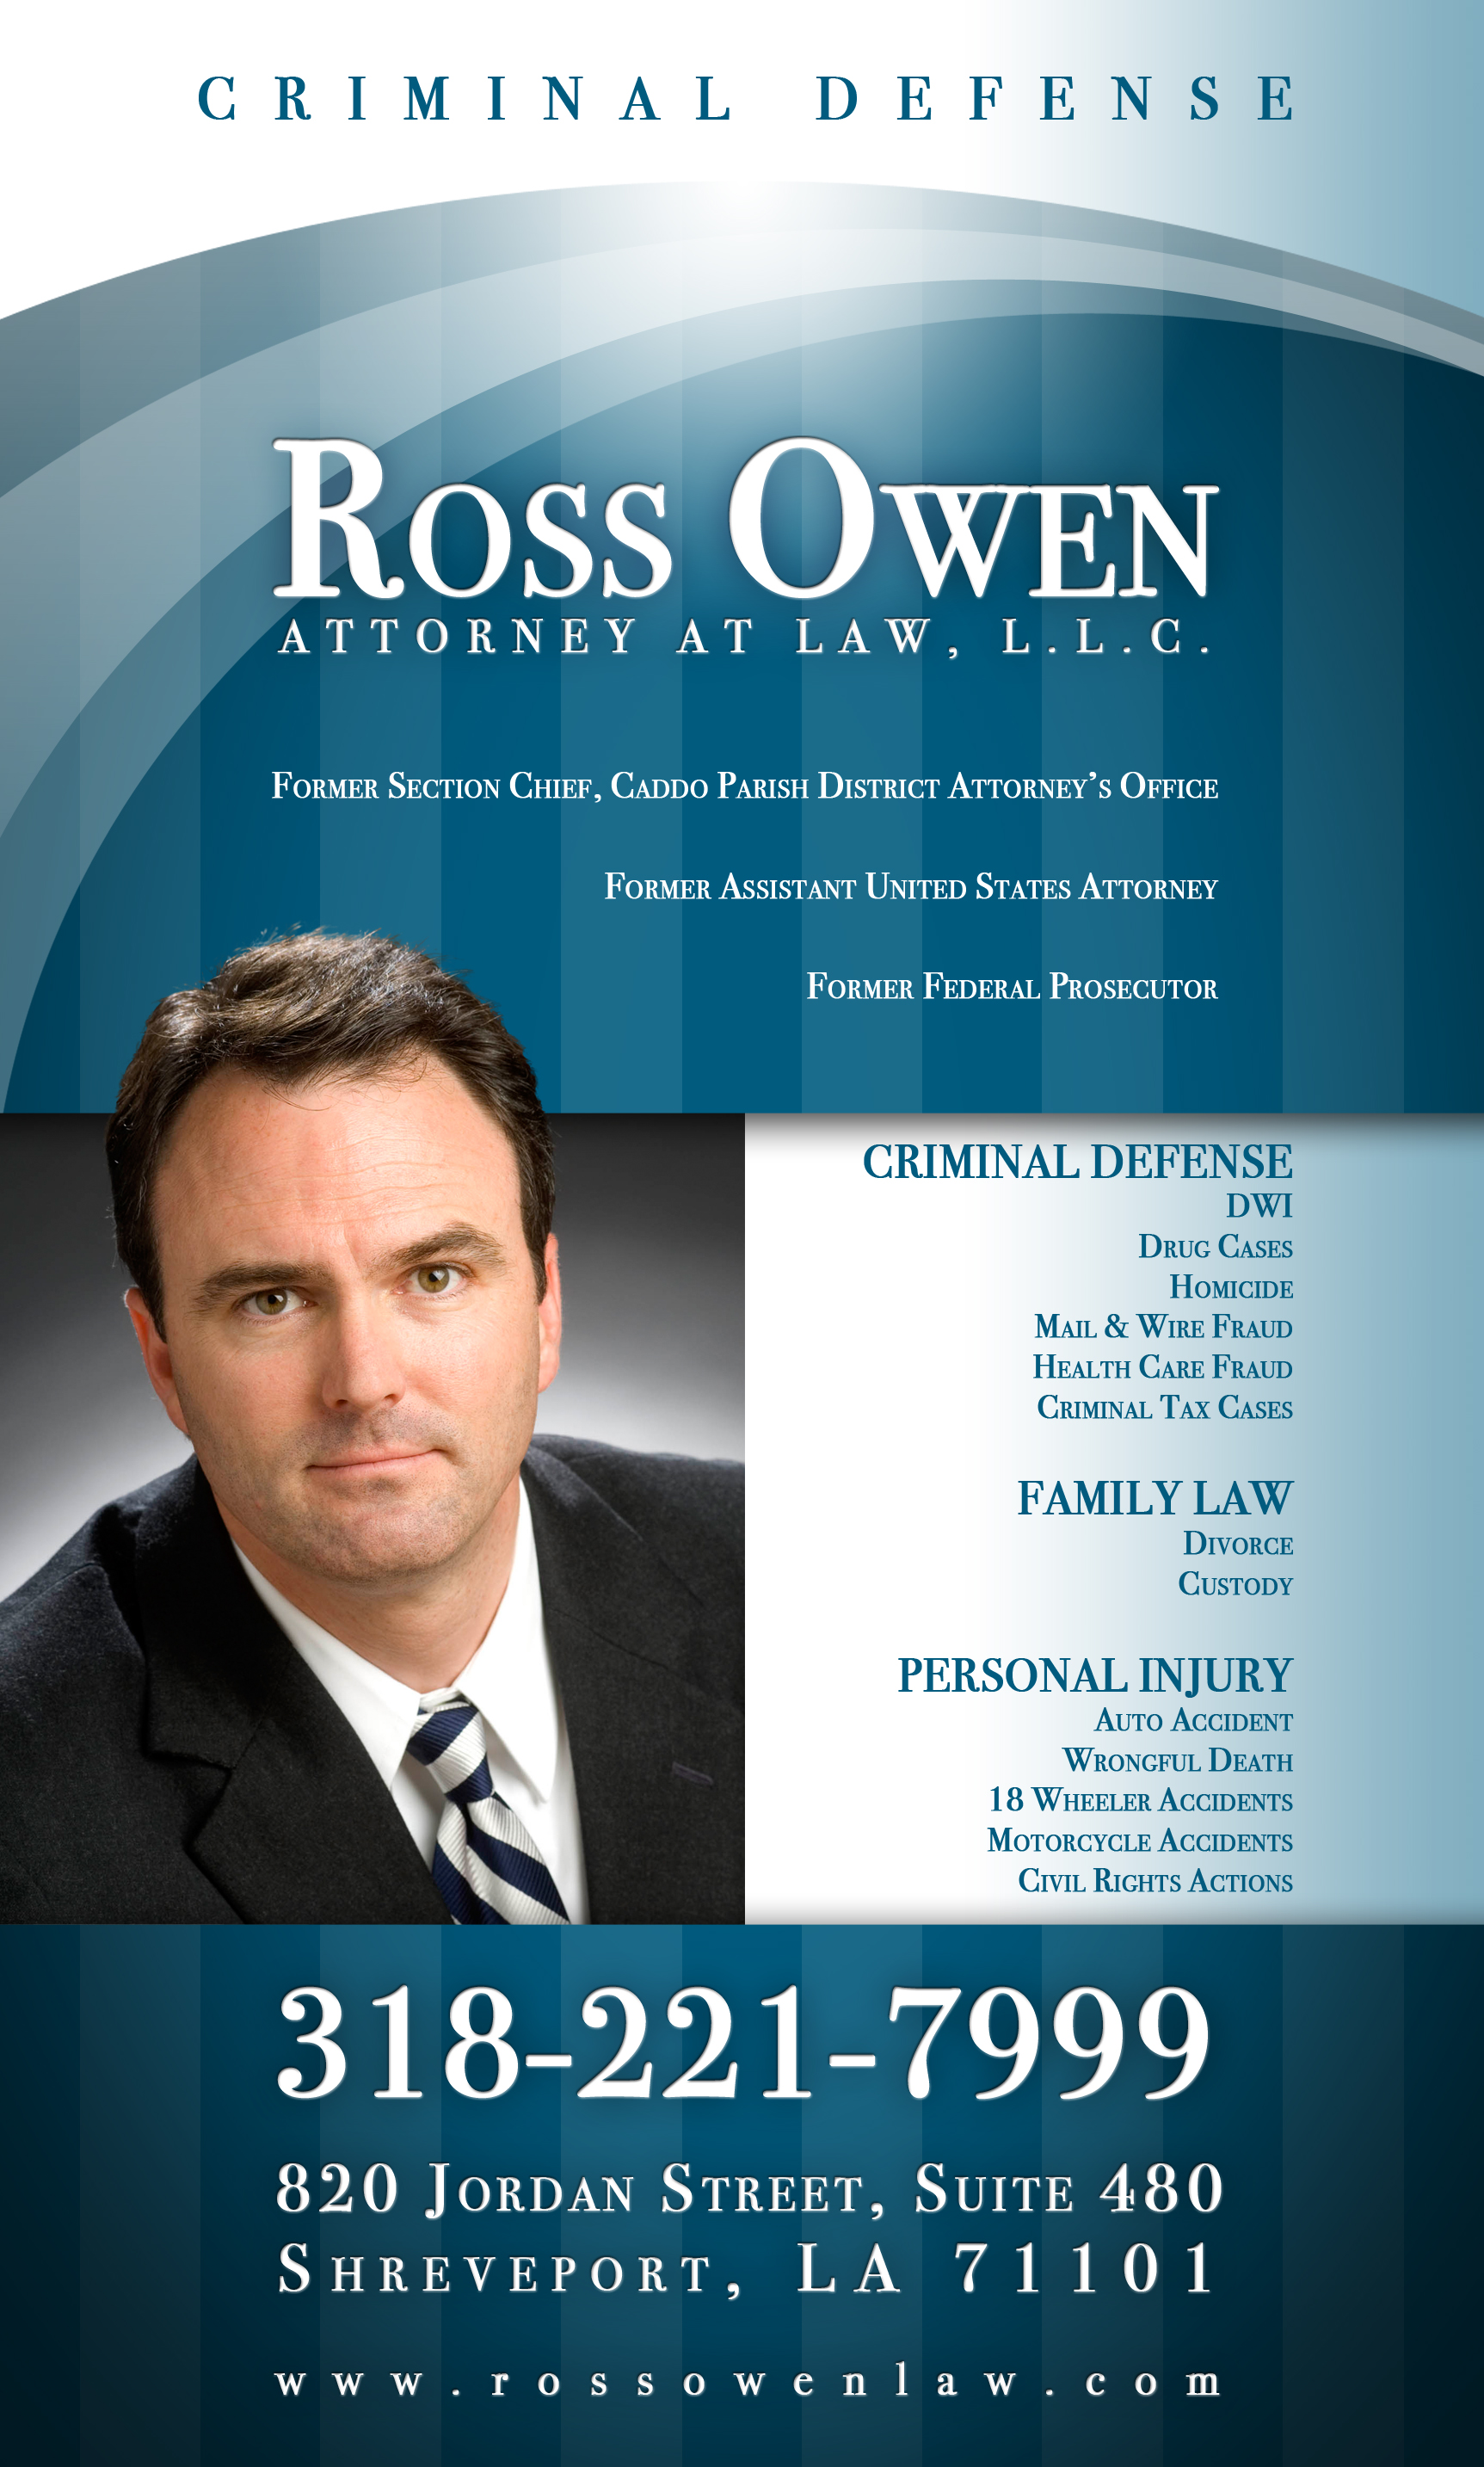 Ross Owen | Criminal Defense Advertising by Christopher P